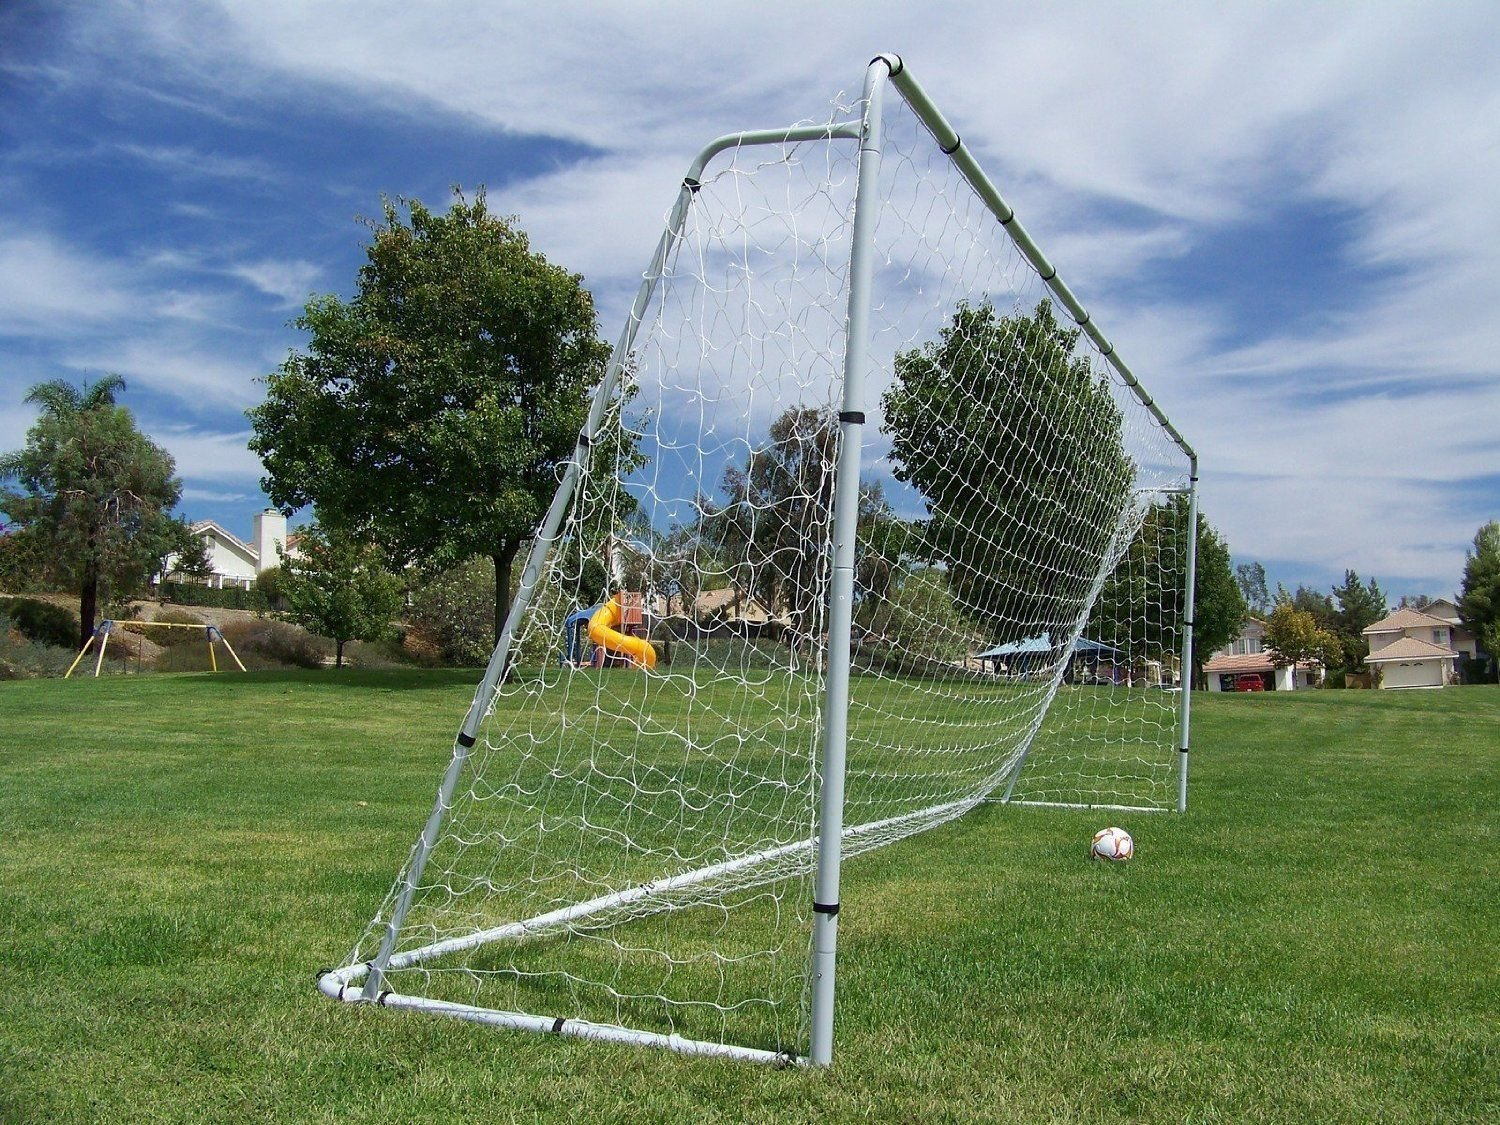 amazon com 24 u0027 x 8 u0027 x 5 u0027 large huge steel soccer goal w quality